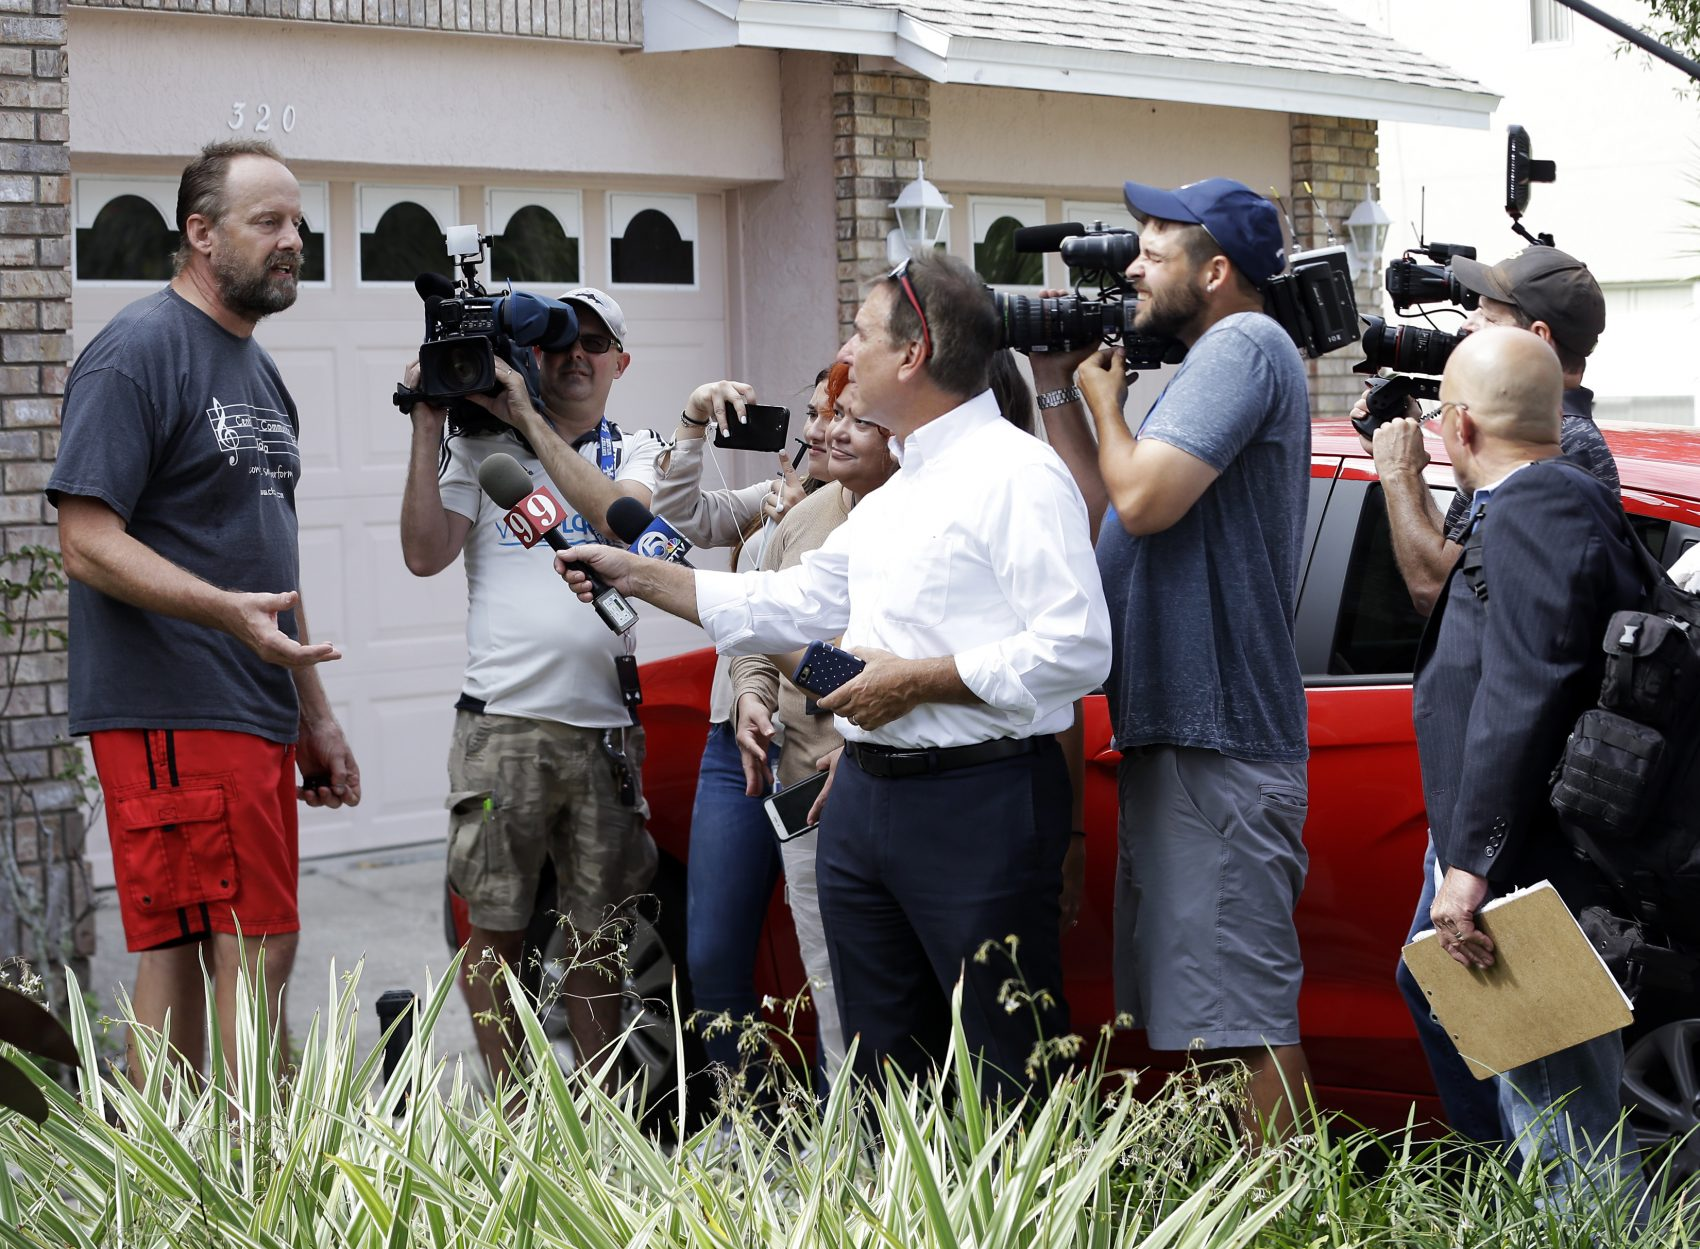 Eric Paddock, left, brother of Las Vegas gunman Stephen Paddock, speaks to members of the media outside his home, Monday, Oct. 2, 2017, in Orlando, Fla. (John Raoux/AP)